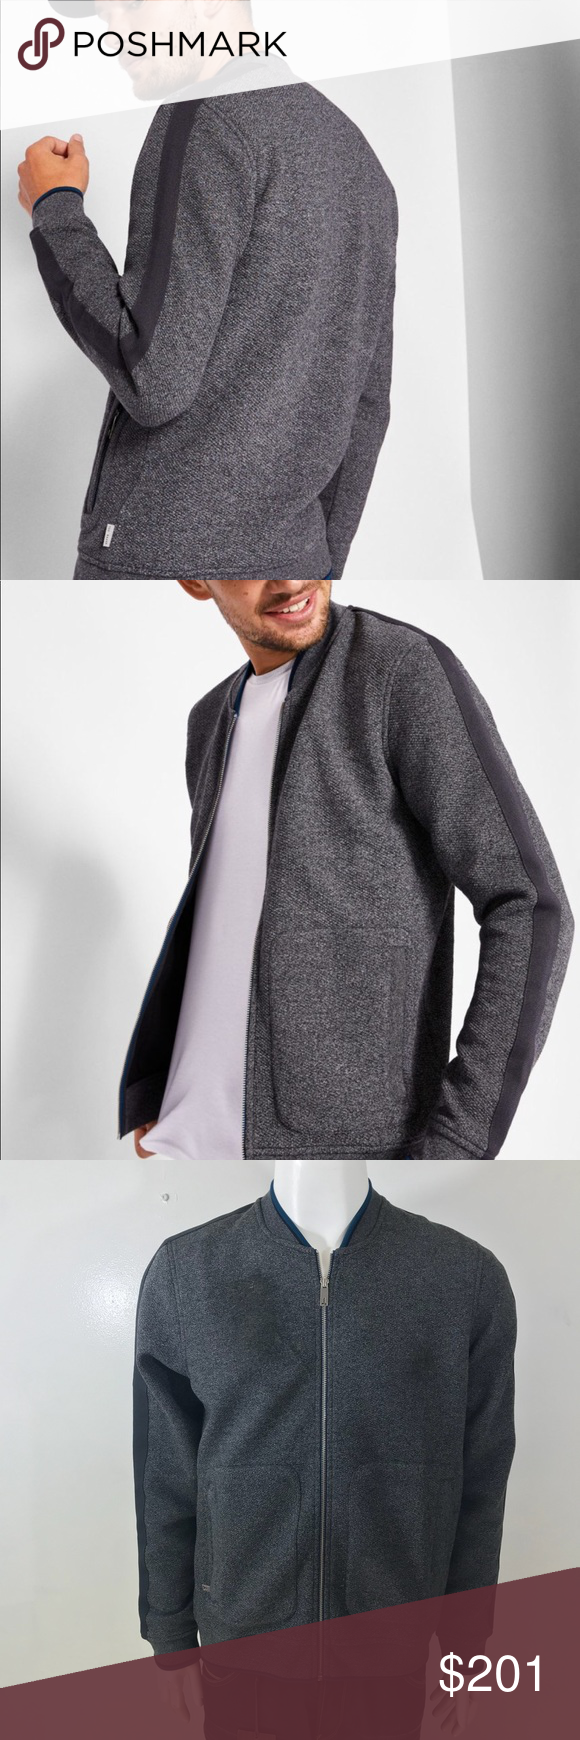 8491f0aec1c1e Ted Baker WHATTS Striped Trim Textured Bomber